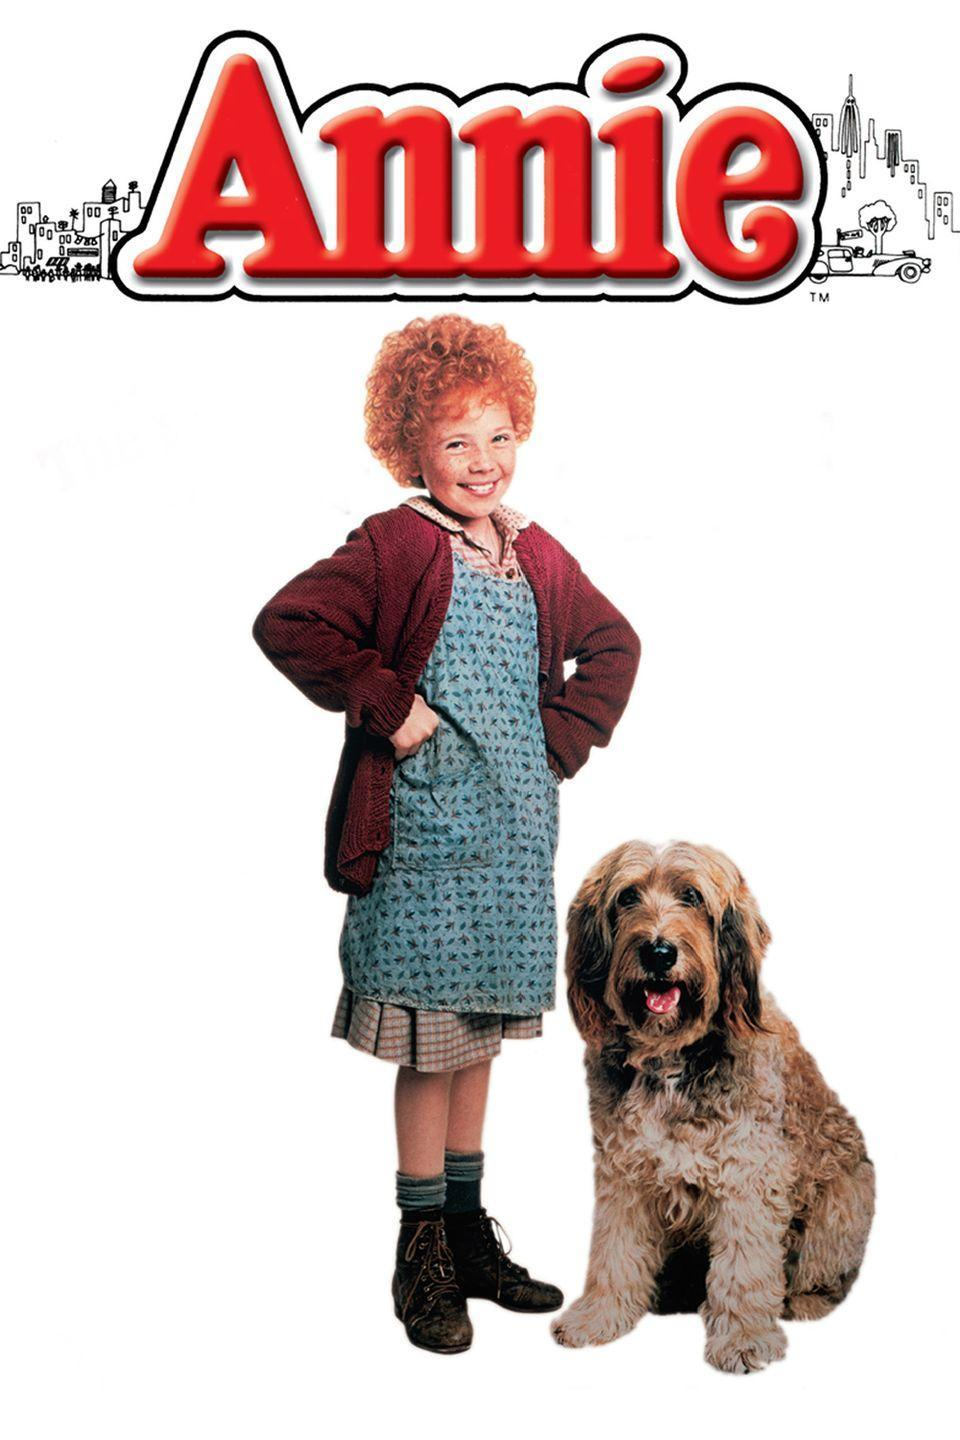 """<p>This 1982 film features a festive 4th of July scene that's worth watching. When Annie is rescued from kidnappers on the patriotic holiday, Mr. Warbucks celebrates with a big fireworks display. <br><br><a class=""""link rapid-noclick-resp"""" href=""""https://www.amazon.com/Annie-Albert-Finney/dp/B009V5KI98/ref=sr_1_1?tag=syn-yahoo-20&ascsubtag=%5Bartid%7C10070.g.36156094%5Bsrc%7Cyahoo-us"""" rel=""""nofollow noopener"""" target=""""_blank"""" data-ylk=""""slk:STREAM NOW"""">STREAM NOW </a></p>"""